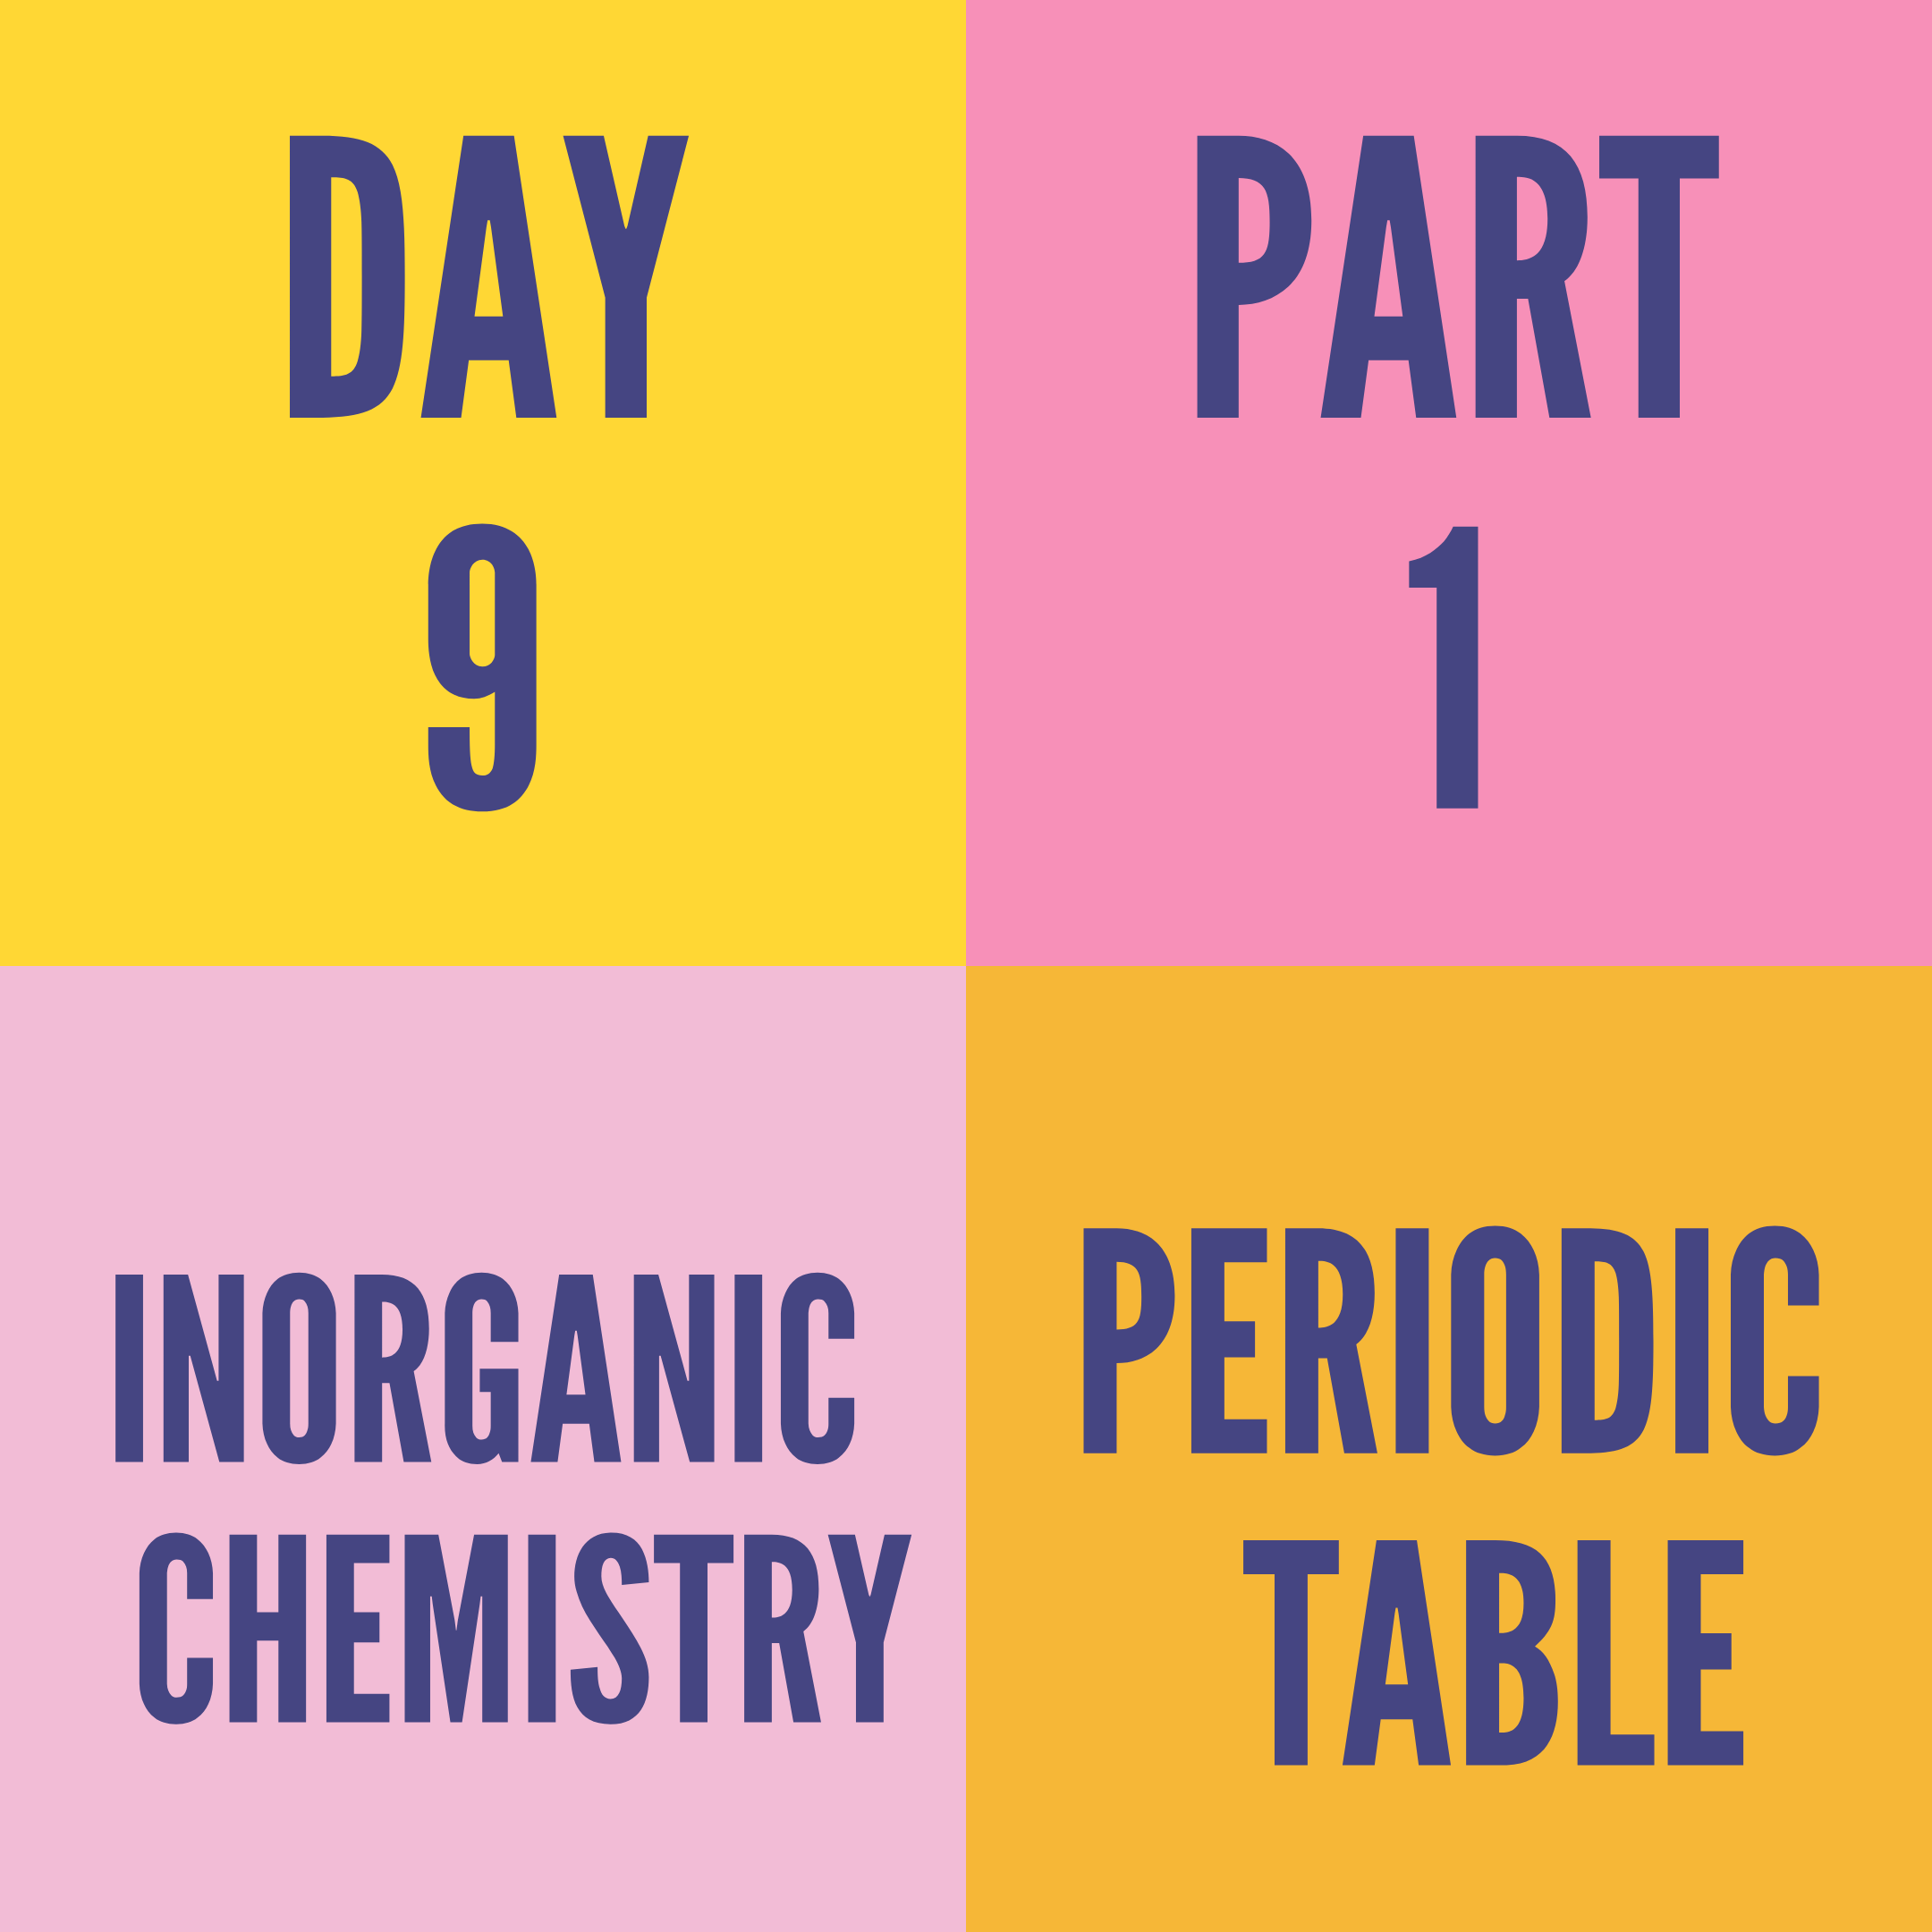 DAY-9 PART-1 PERIODIC TABLE